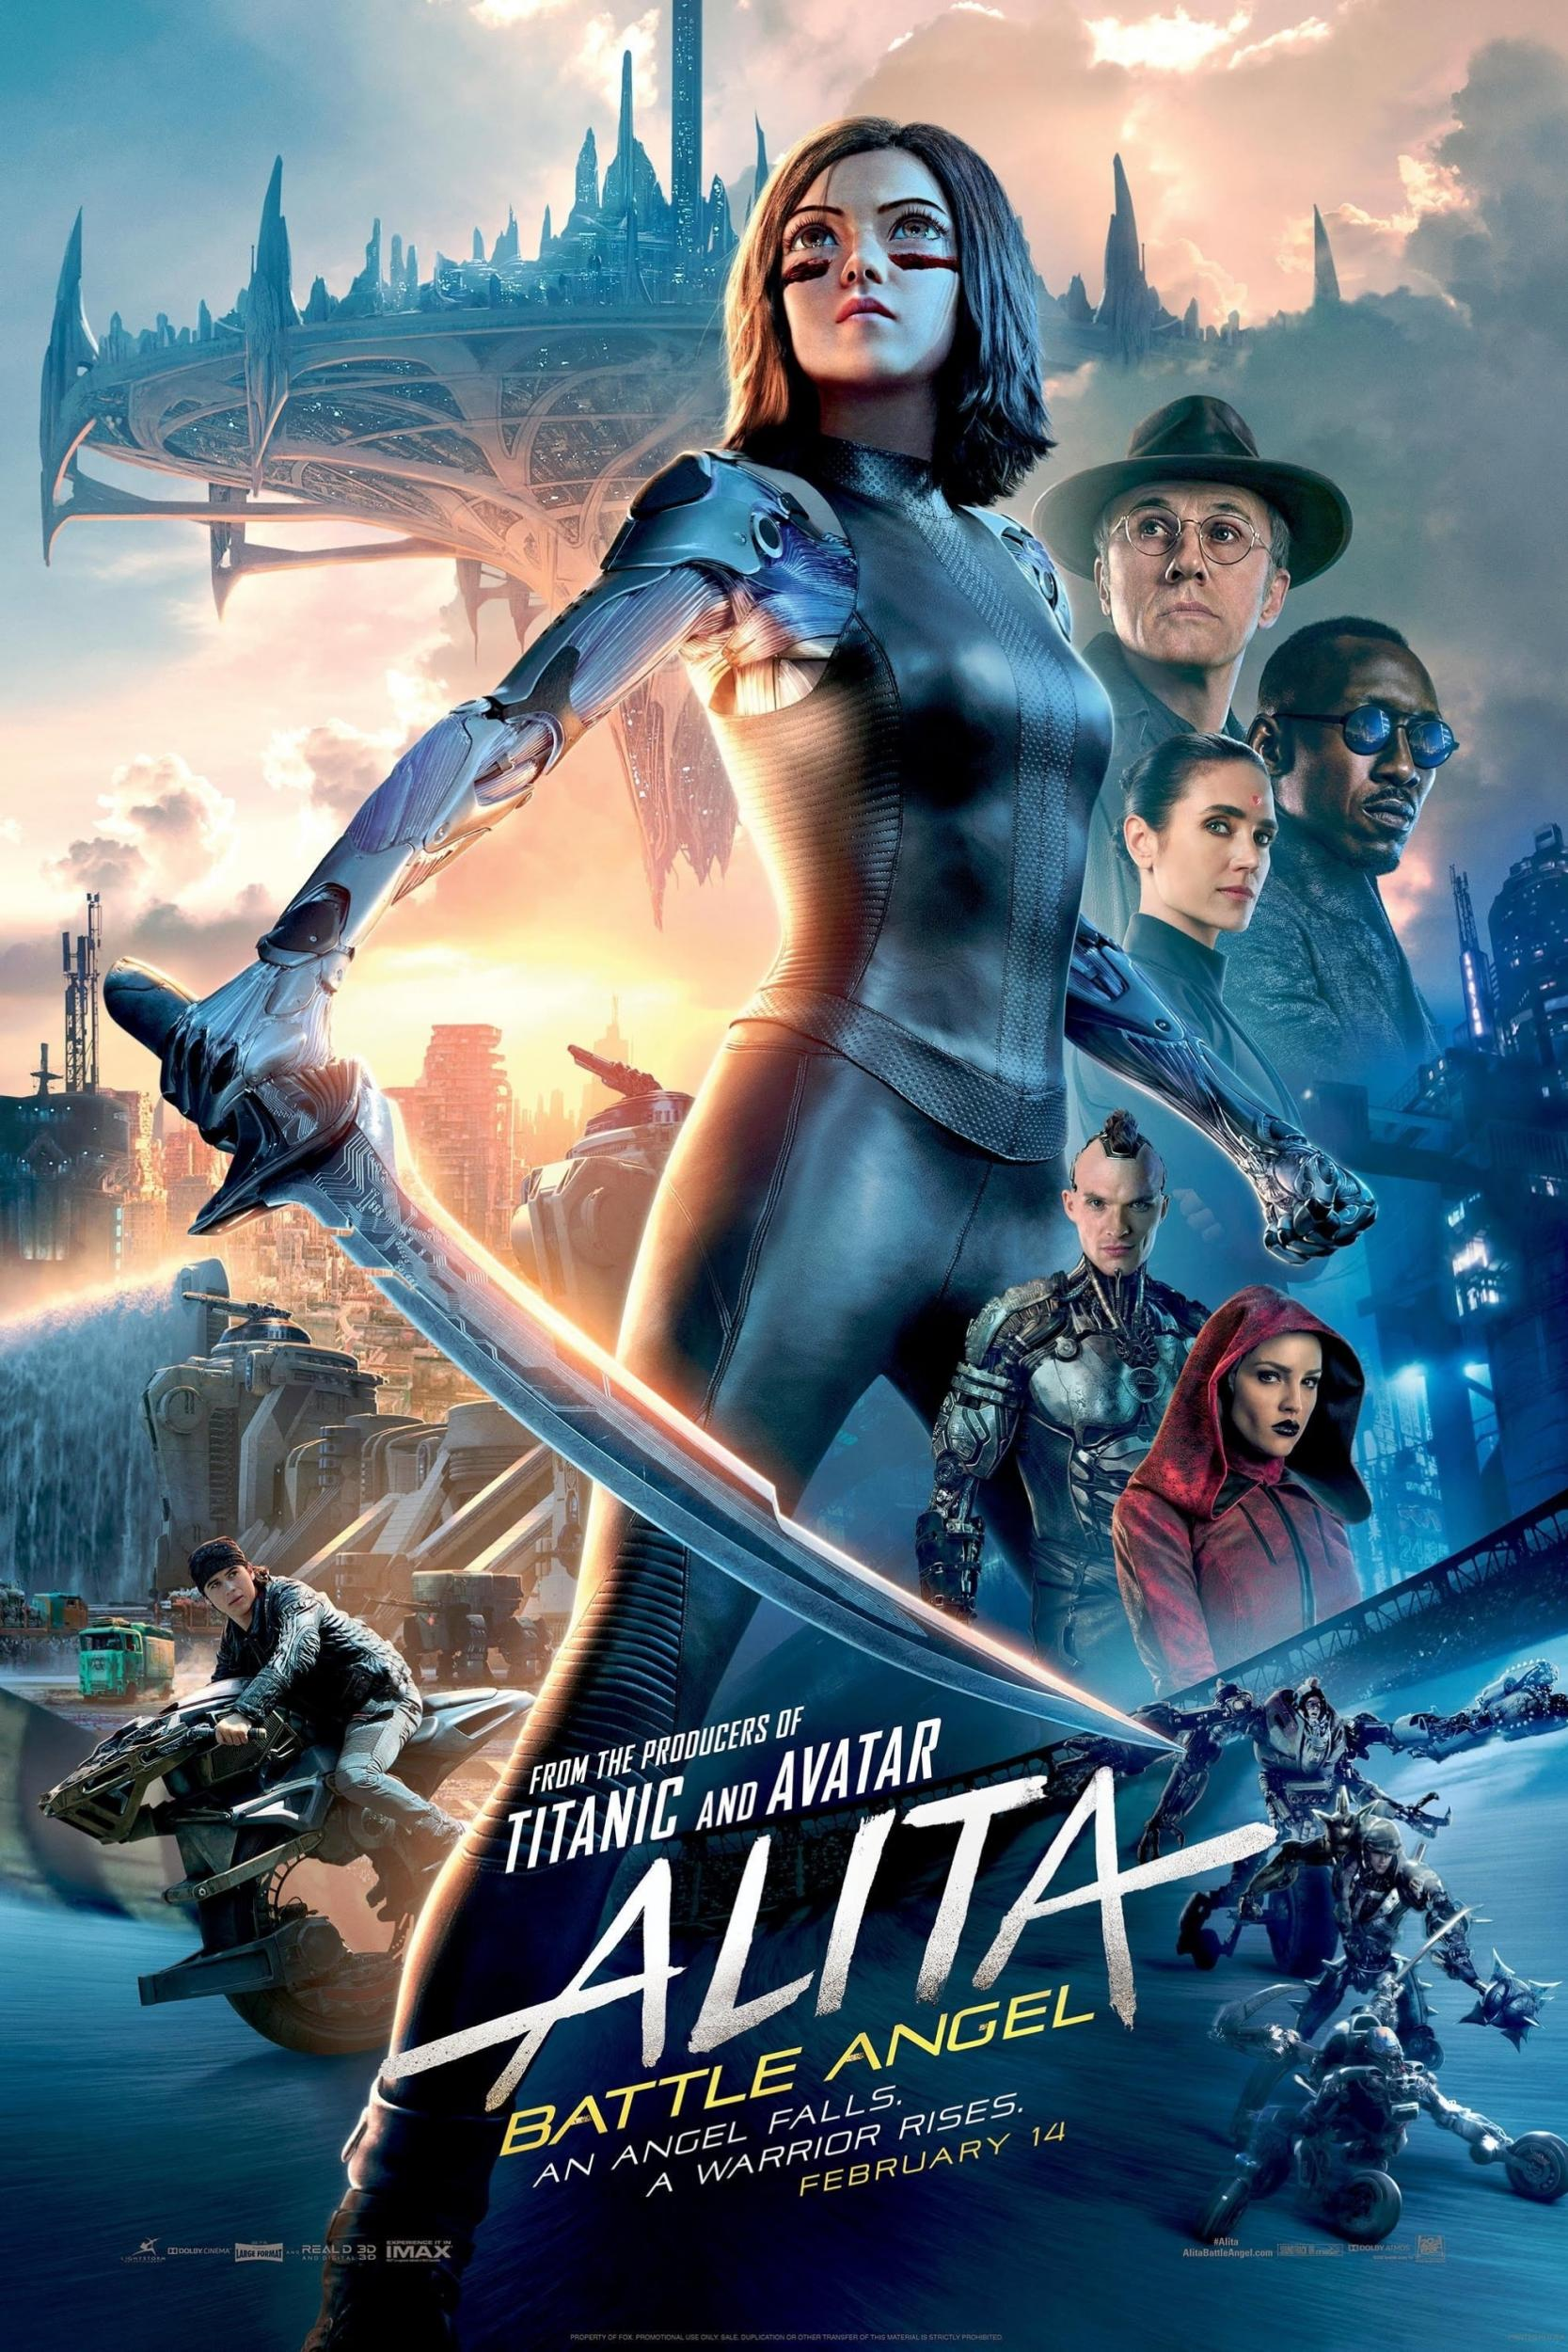 Angel From Holly's World the cult of 'alita: battle angel' – alt-right parable or